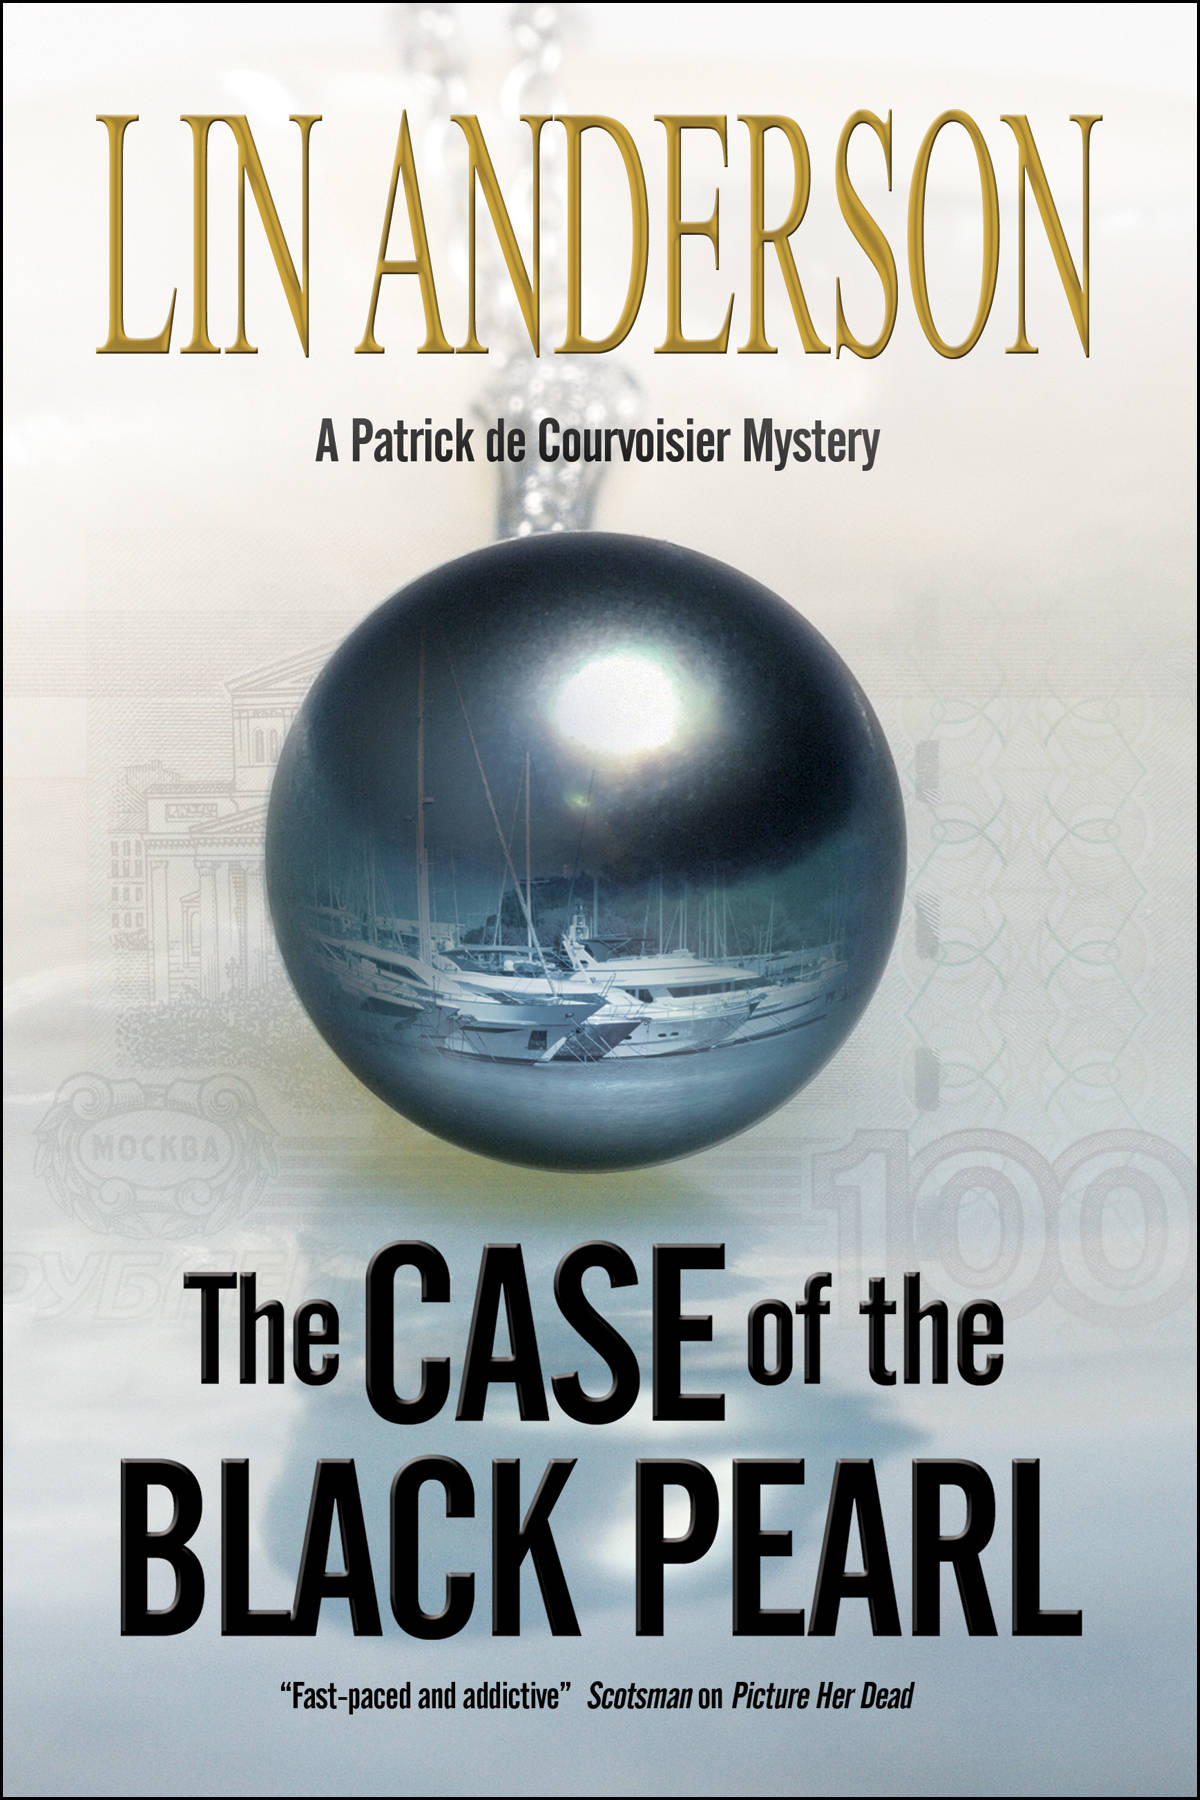 Case of the Black Pearl